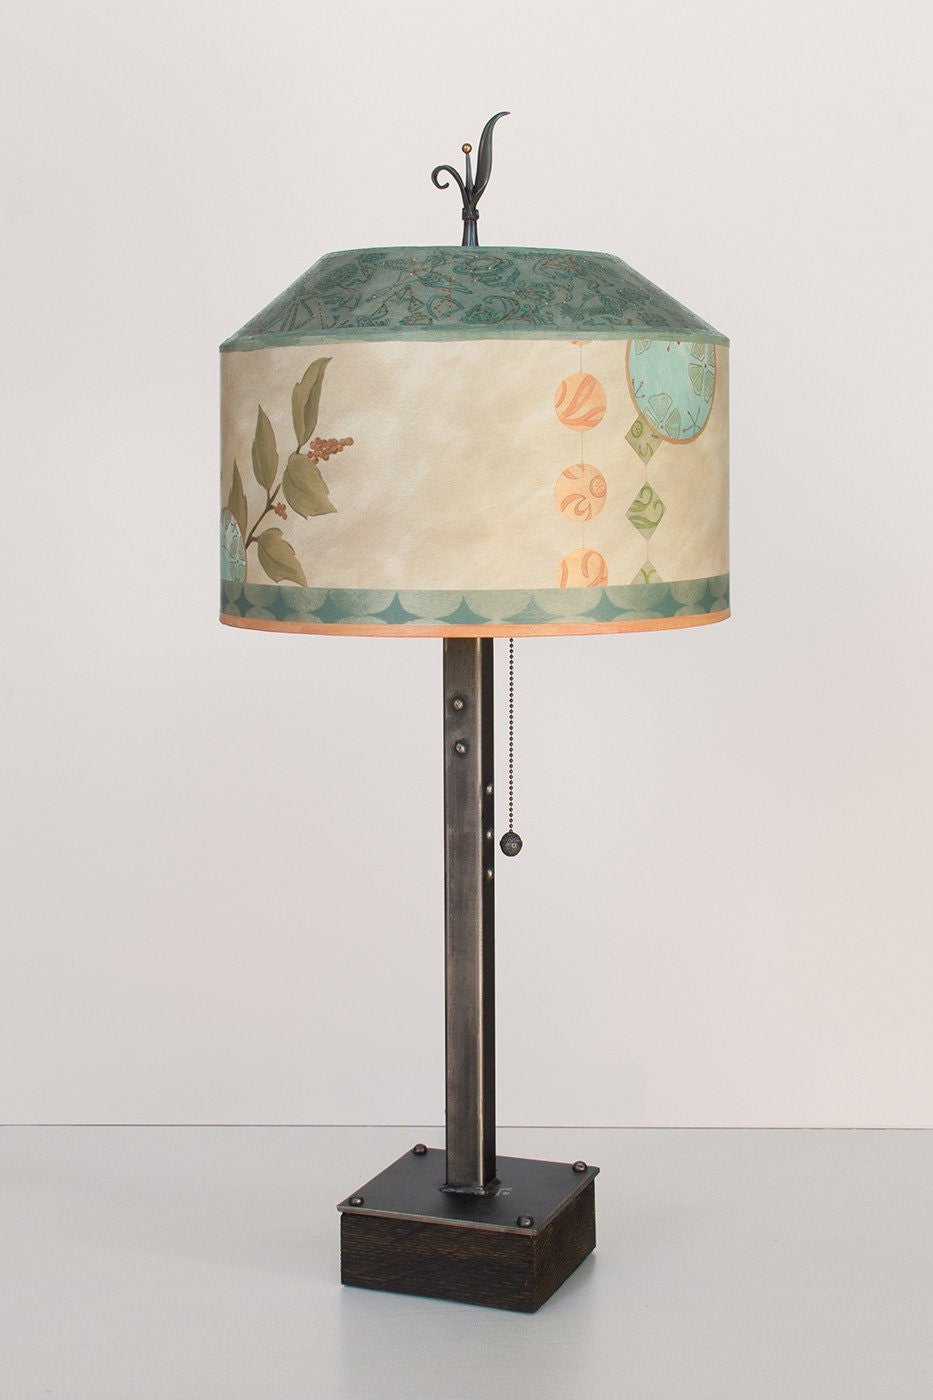 Steel Table Lamp on Wood with Medium Canopy Shade in Celestial Leaf